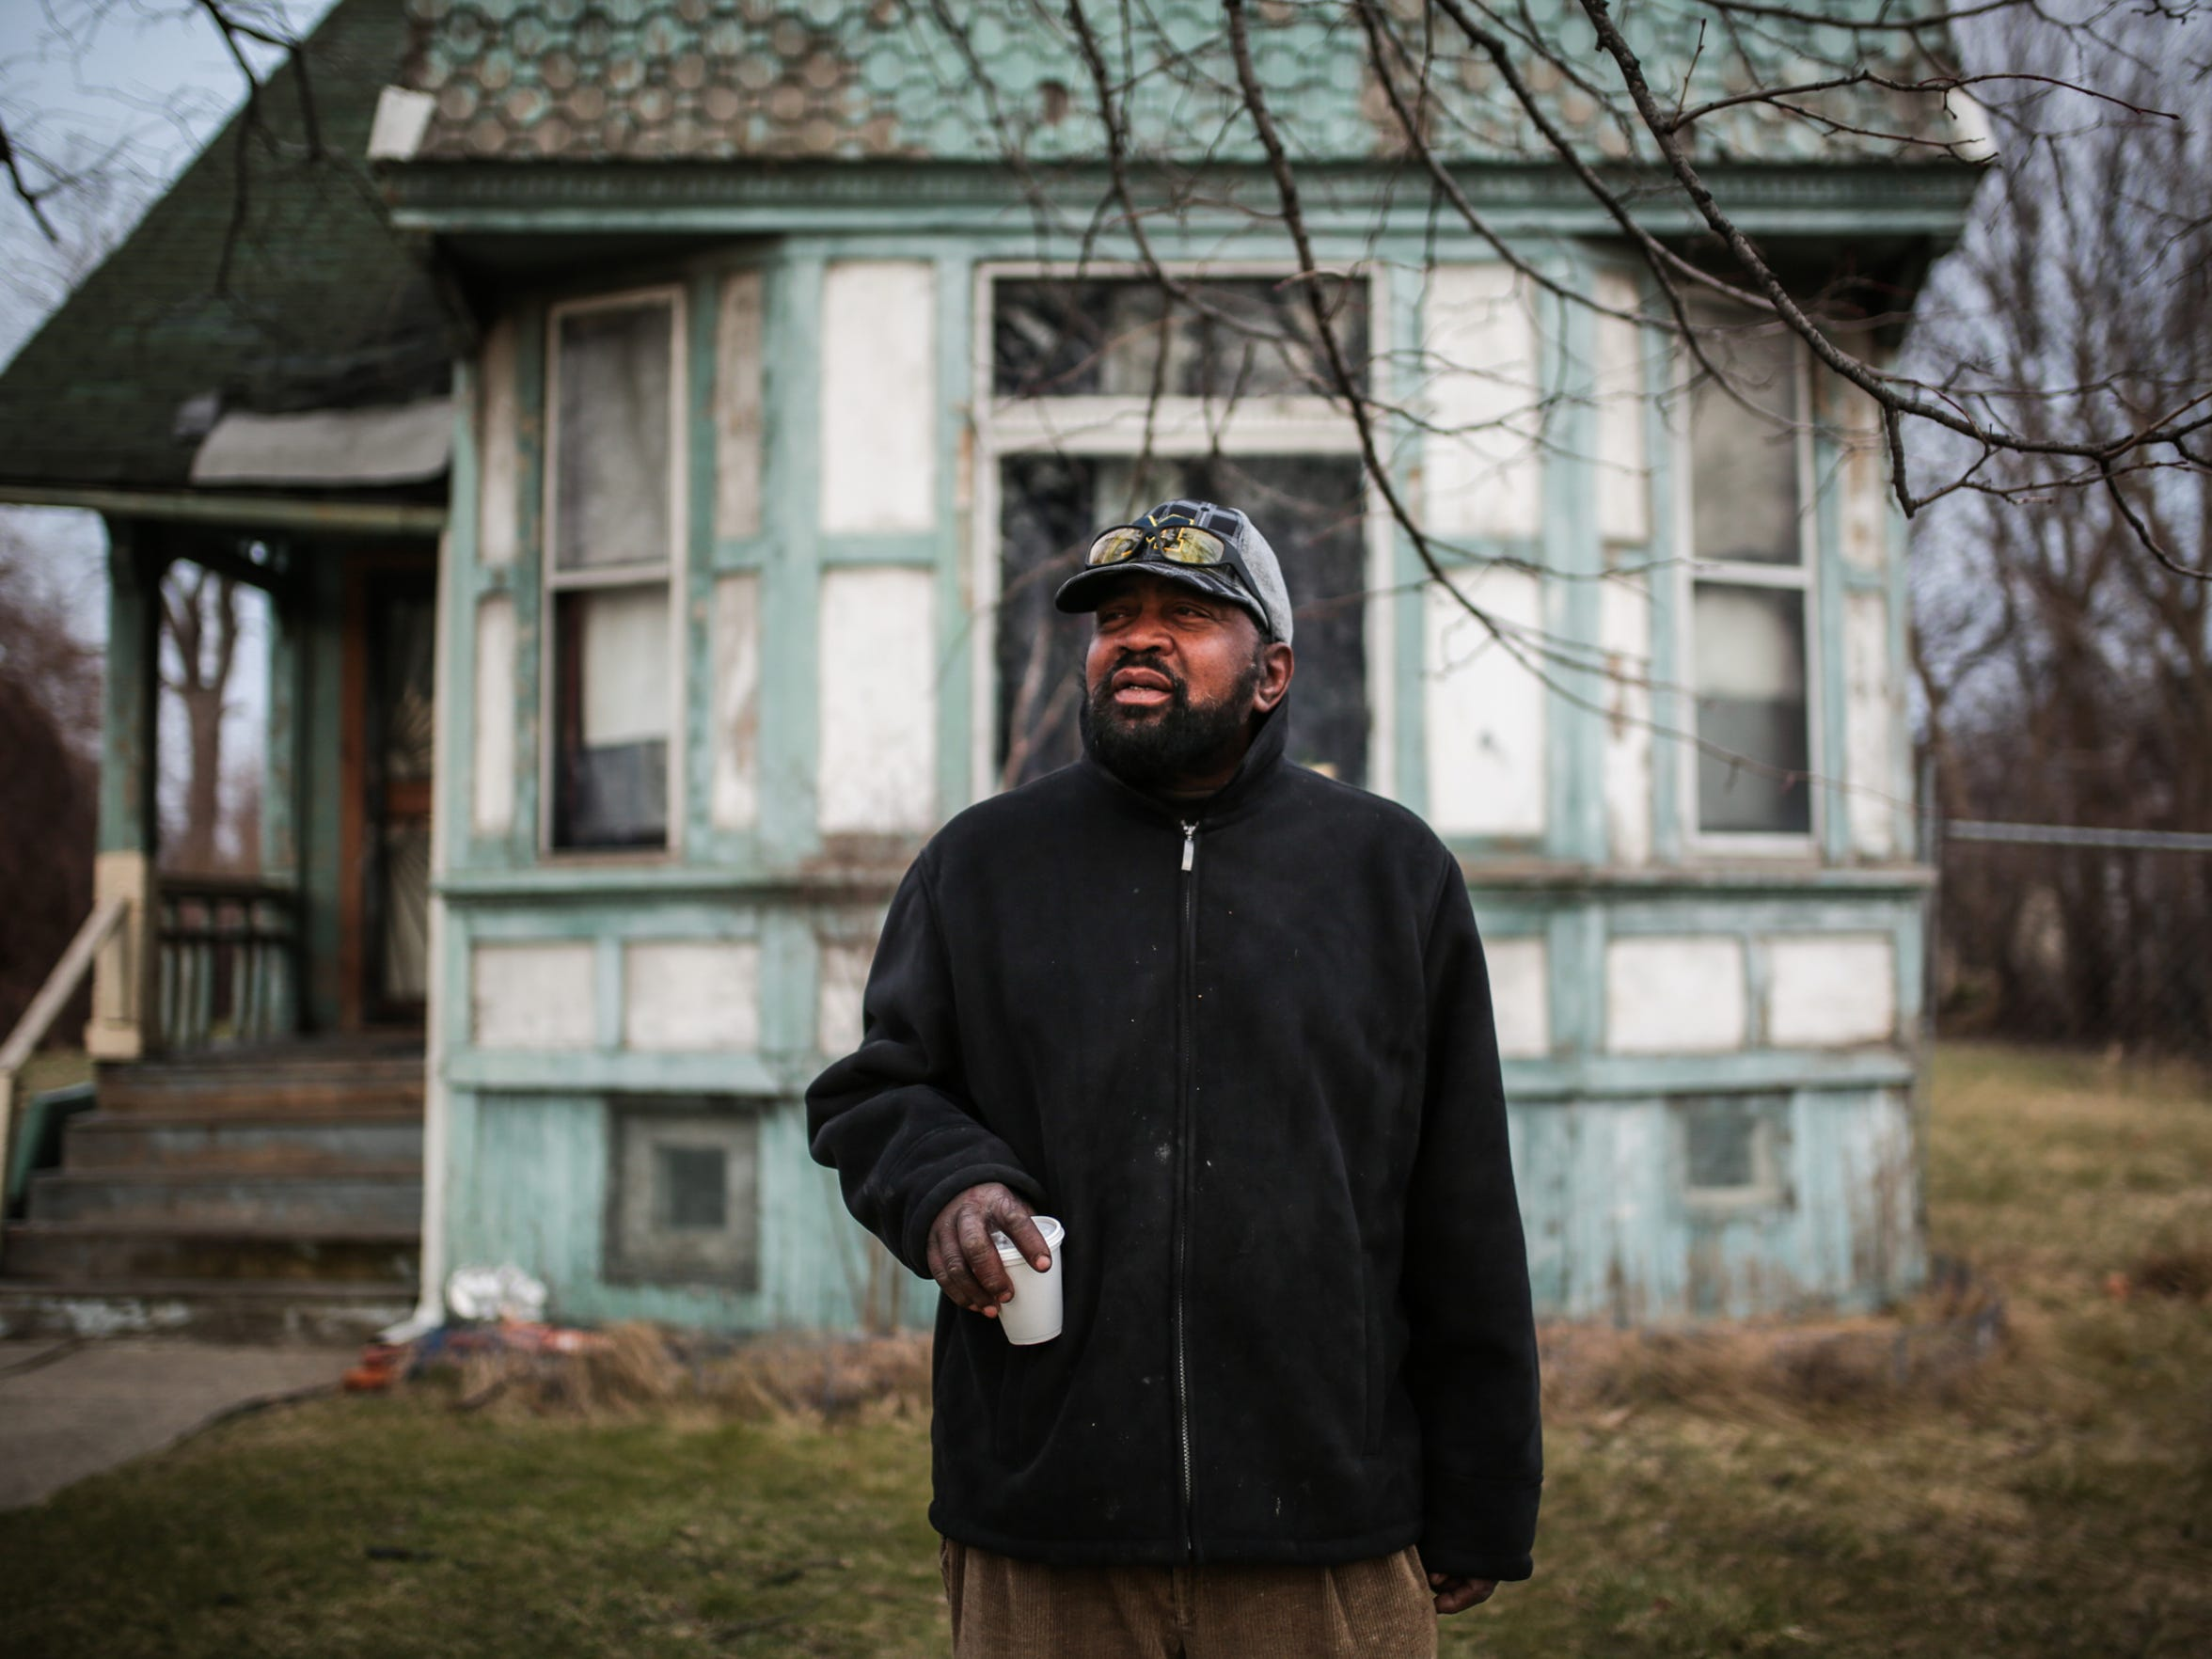 "Darnell Taylor, 63, of Detroit stands near the Salvation Army's Bed and Bread program food truck on March 2, 2017, on Detroit's east side. Taylor was once a local minister who operated a church and three homeless shelters. But, he said, the death of his wife led to drugs and alcohol, and left him broke and homeless. ""I gotta get my life back together,"" said Taylor. ""First step is to get myself into treatment, make up my mind to do the right thing."" Taylor's brother Gregory is sometimes one of the drivers along this route. But he wasn't there that day."